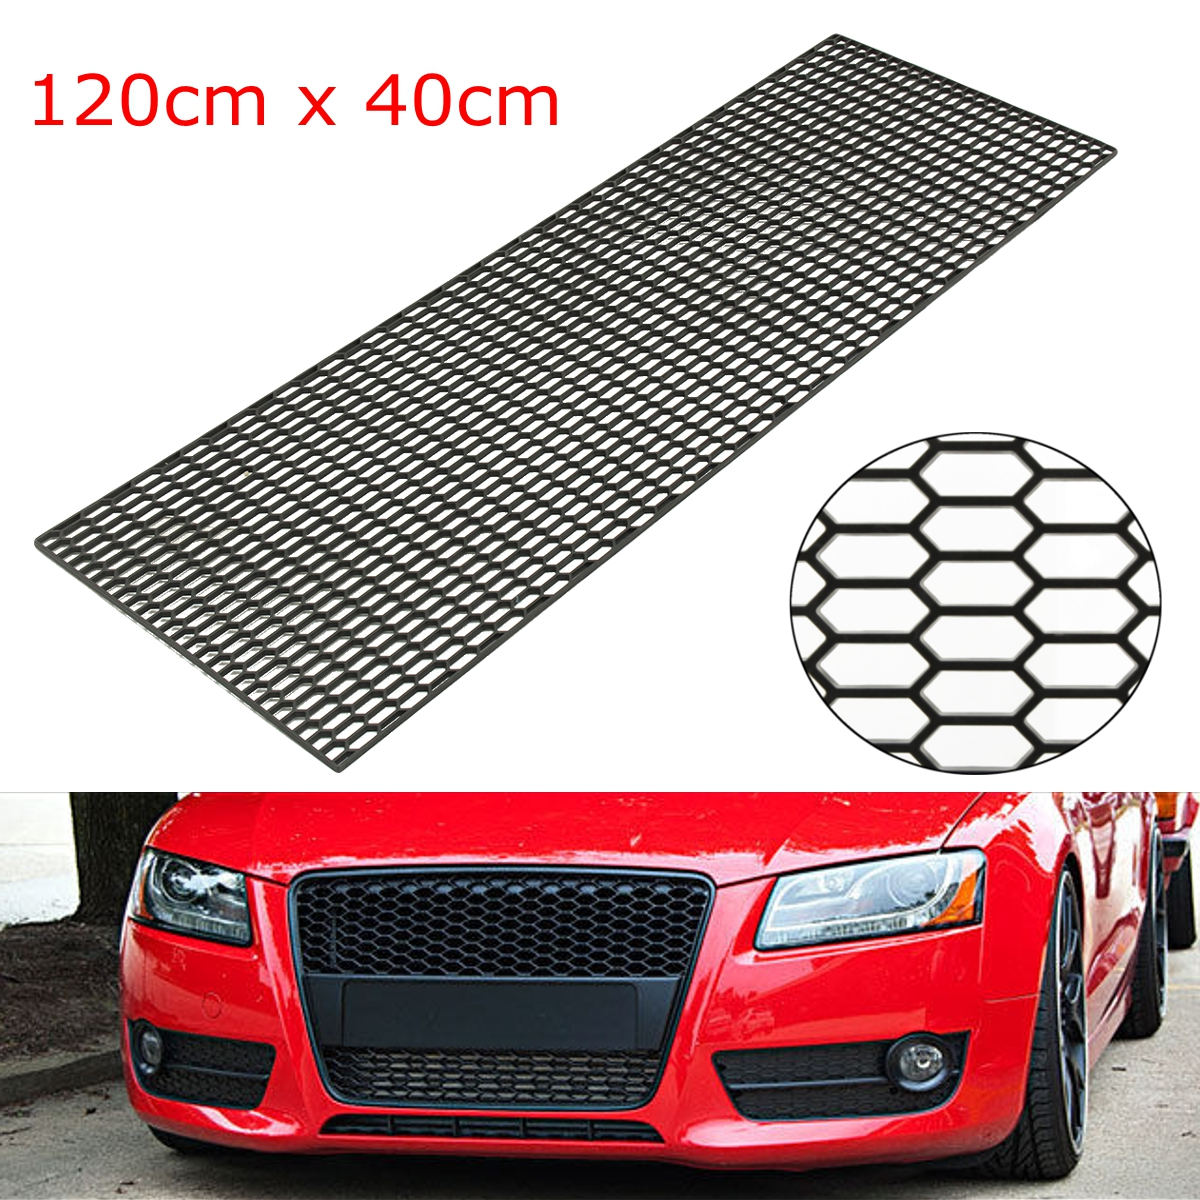 120cm Universal Car Styling Air Intake Racing Honeycomb Meshed Grill Spoiler Bumper Hood Vent ob 515 universal air flow vent hood covers for car silver pair